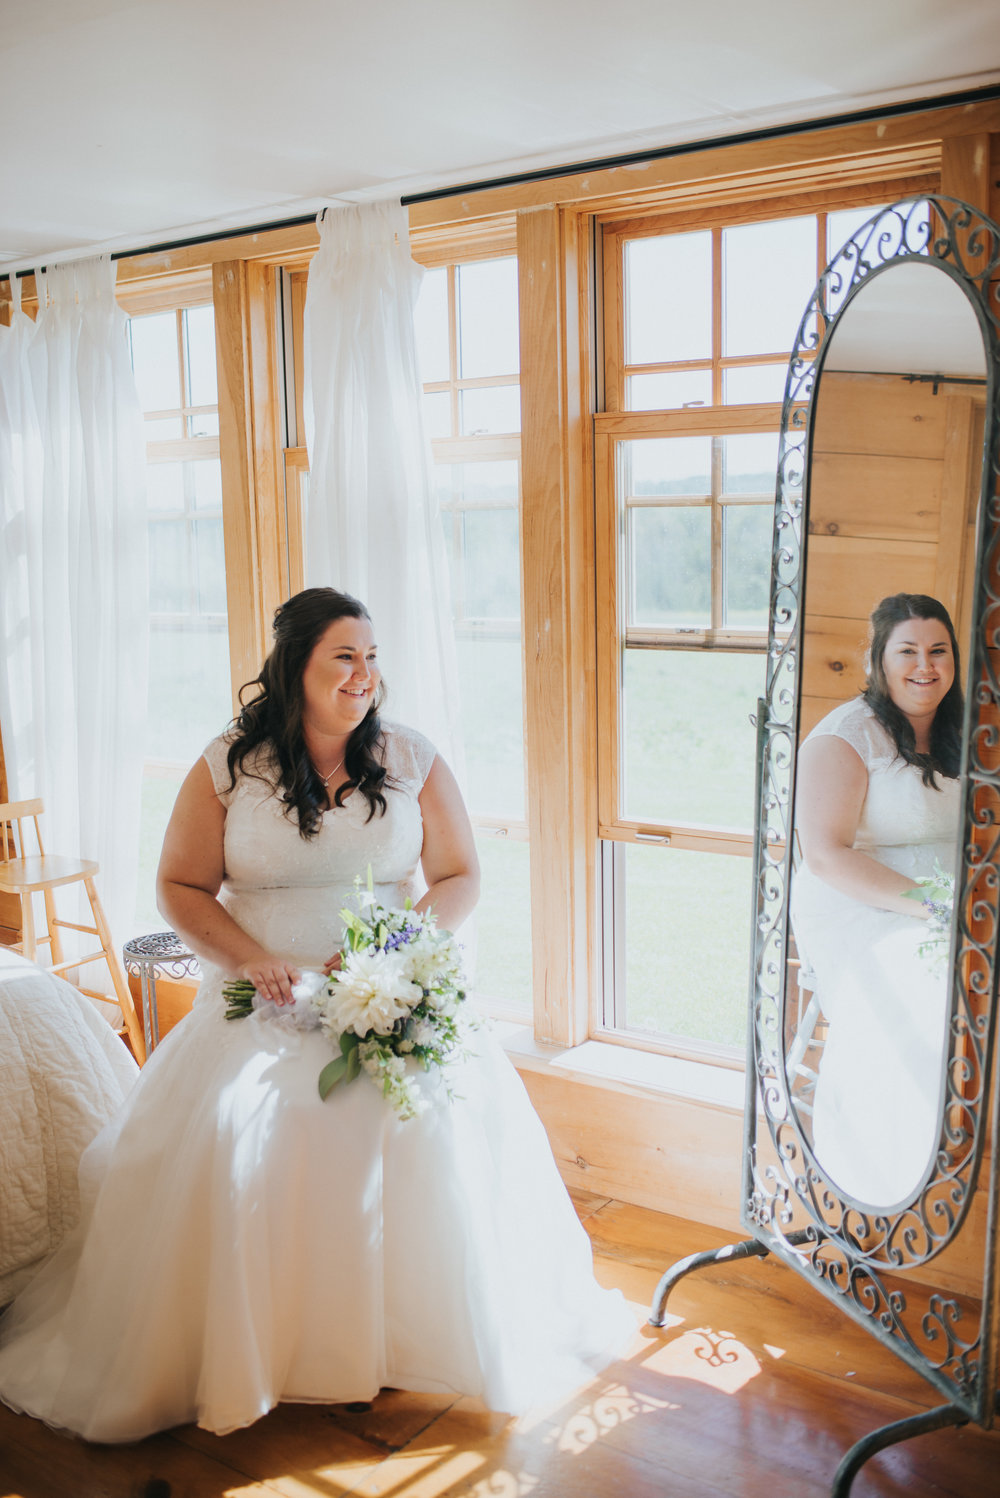 Melissa Cordick relaxing in South Pond's Cottage before heading down the aisle.